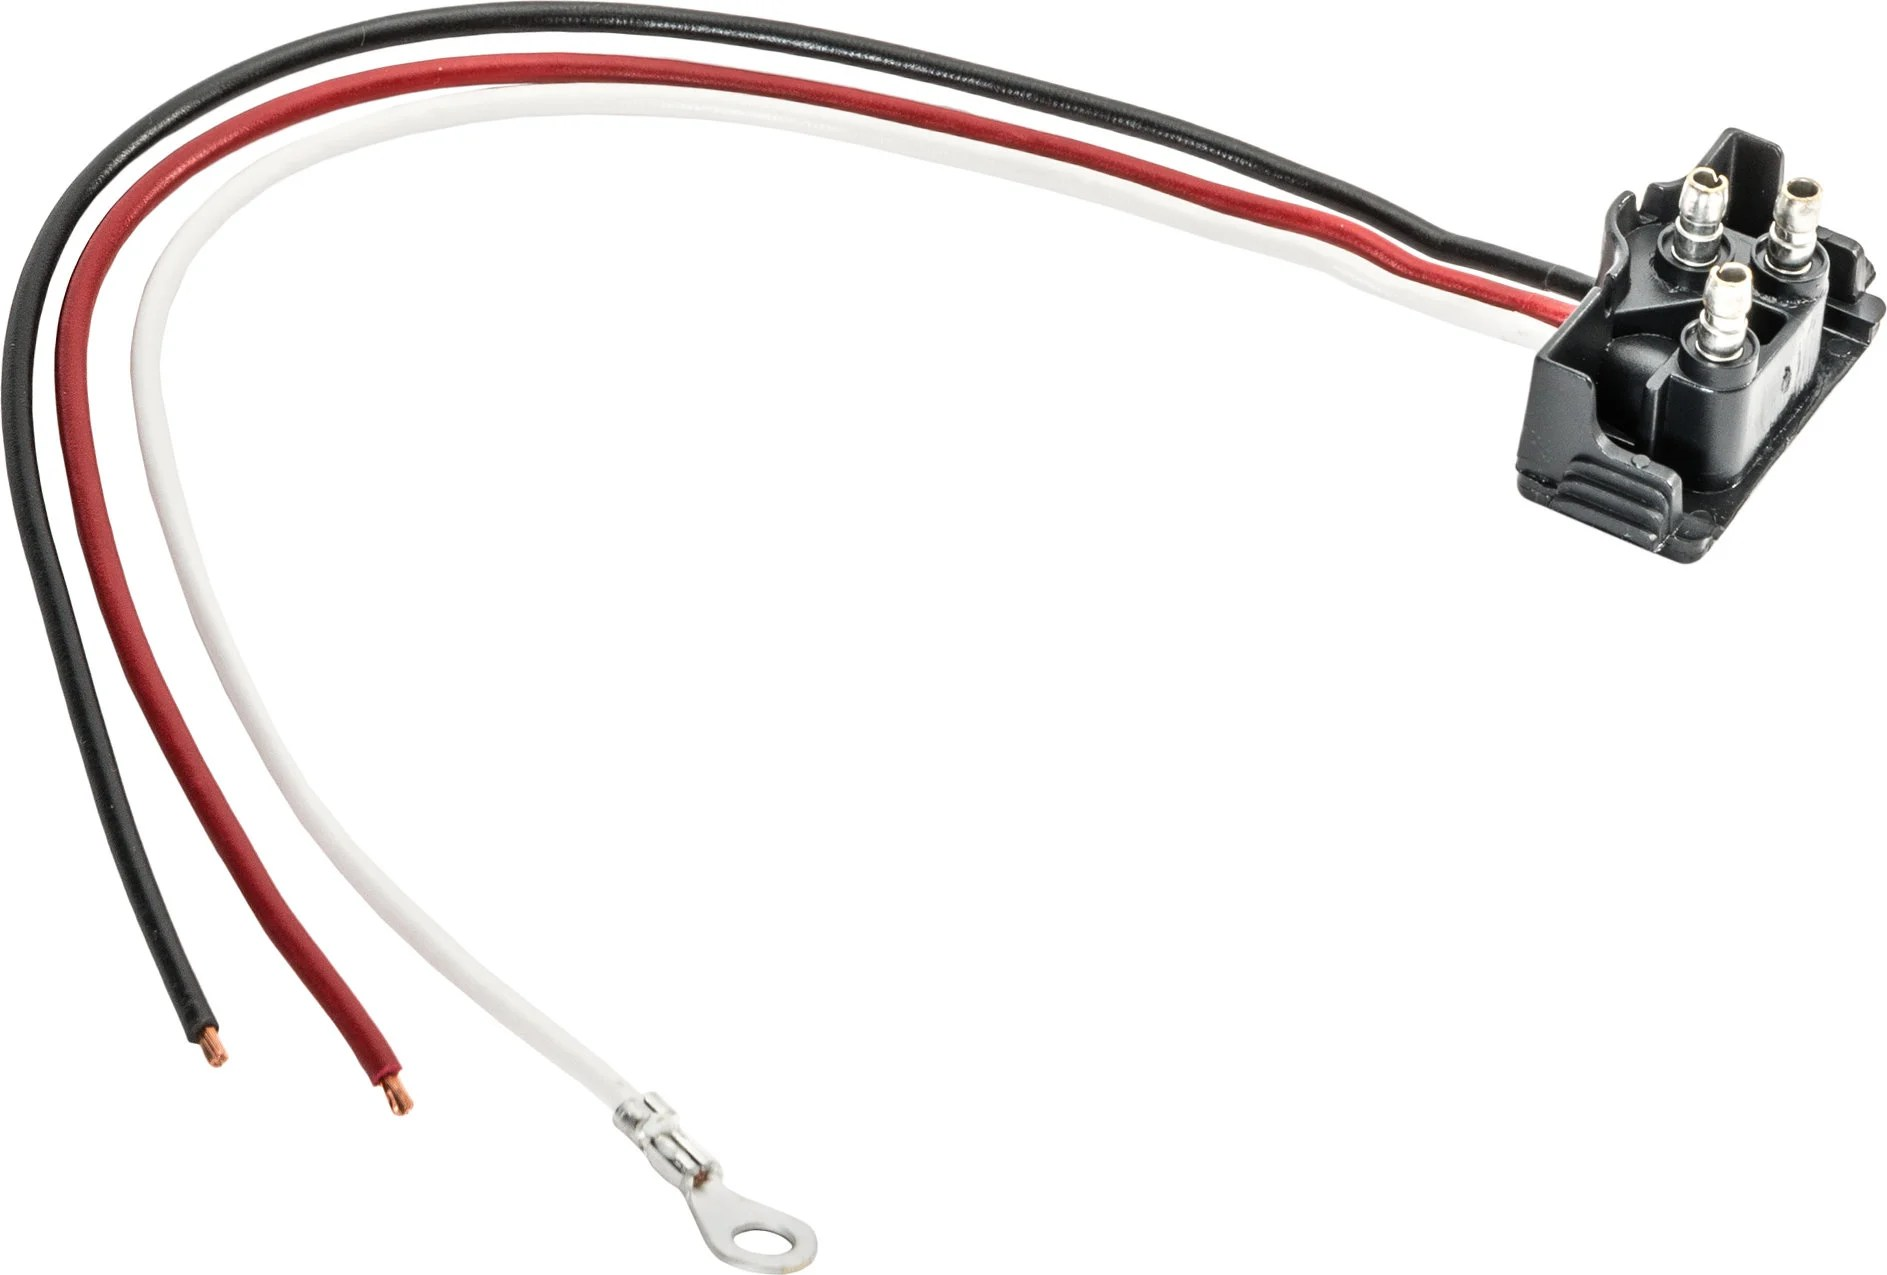 hight resolution of truck lite 94993 wiring harness for 4 round and oval lamps the quadratec difference